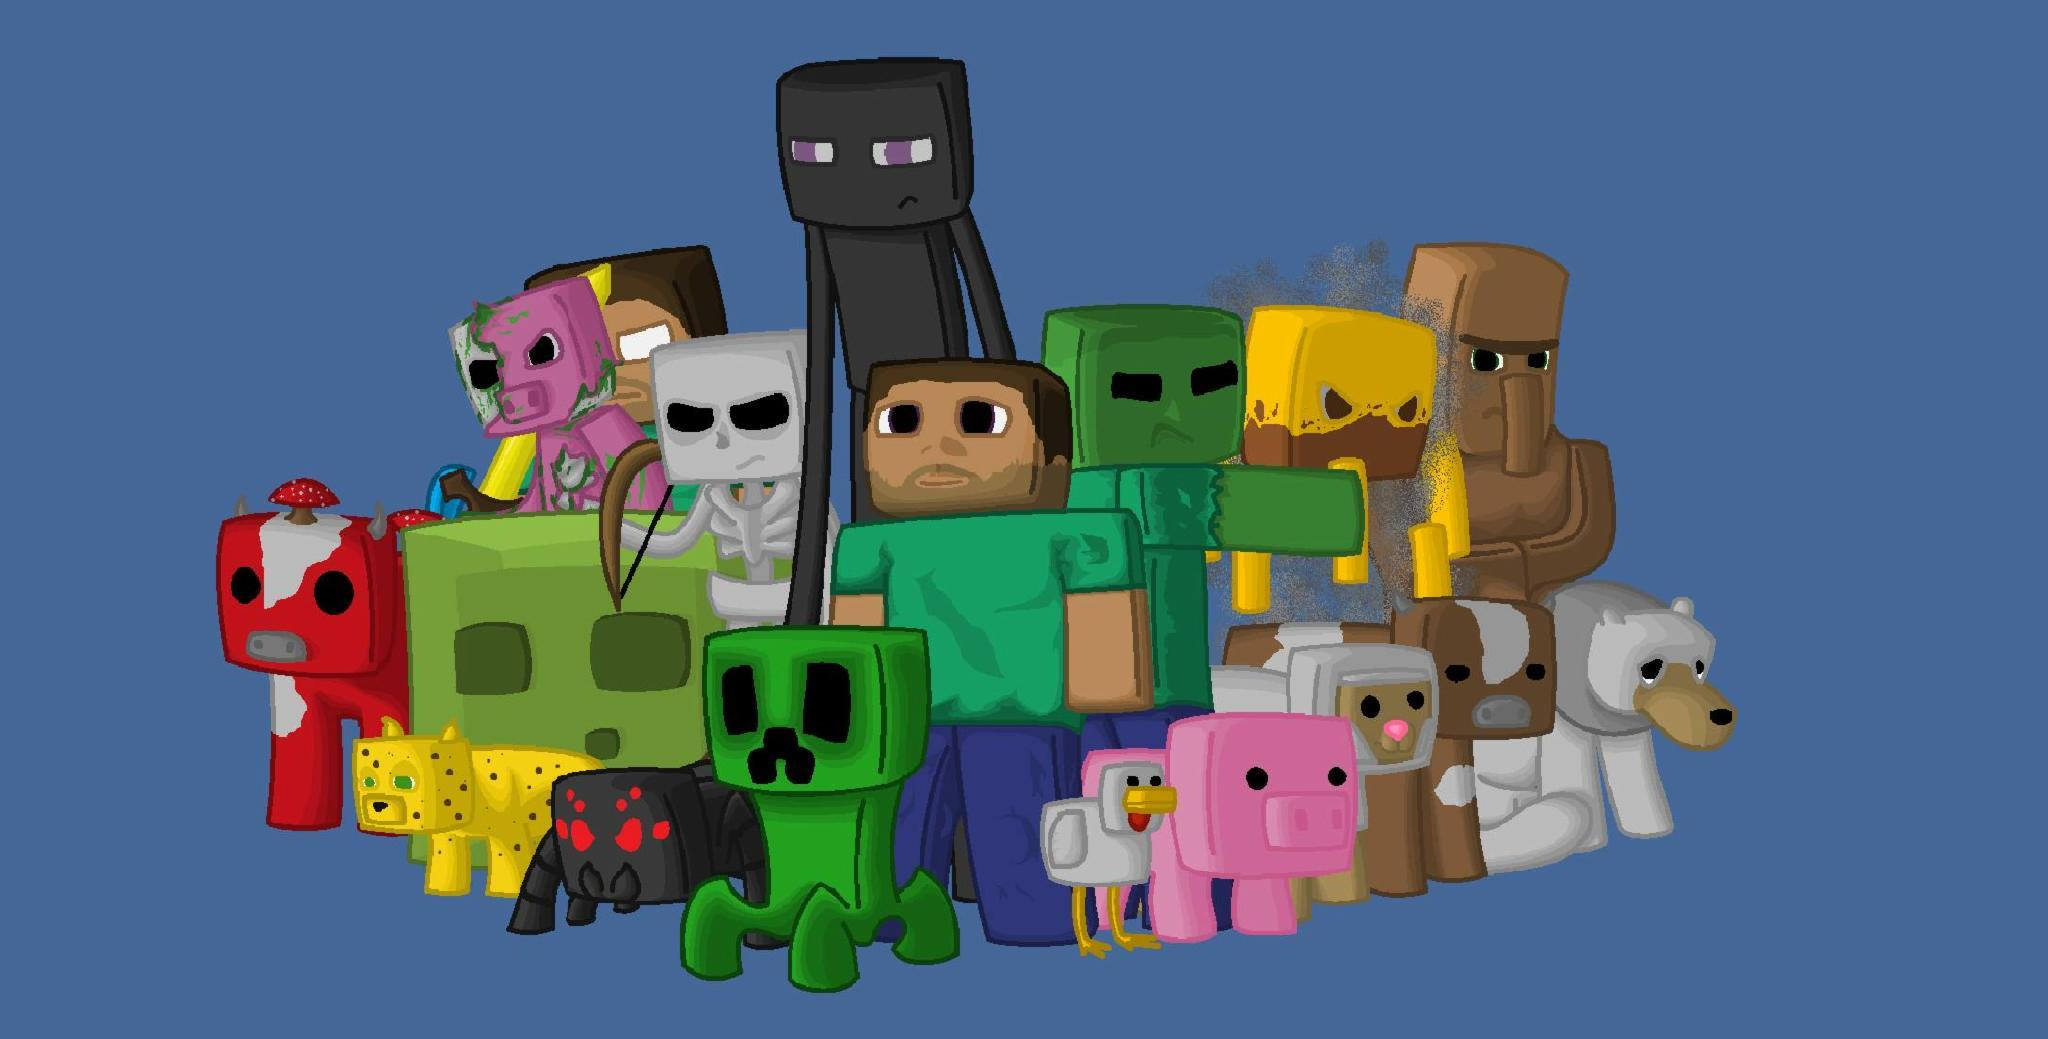 Hug able Zombie, Exploding Nice Creeper or Invisible Skeleton